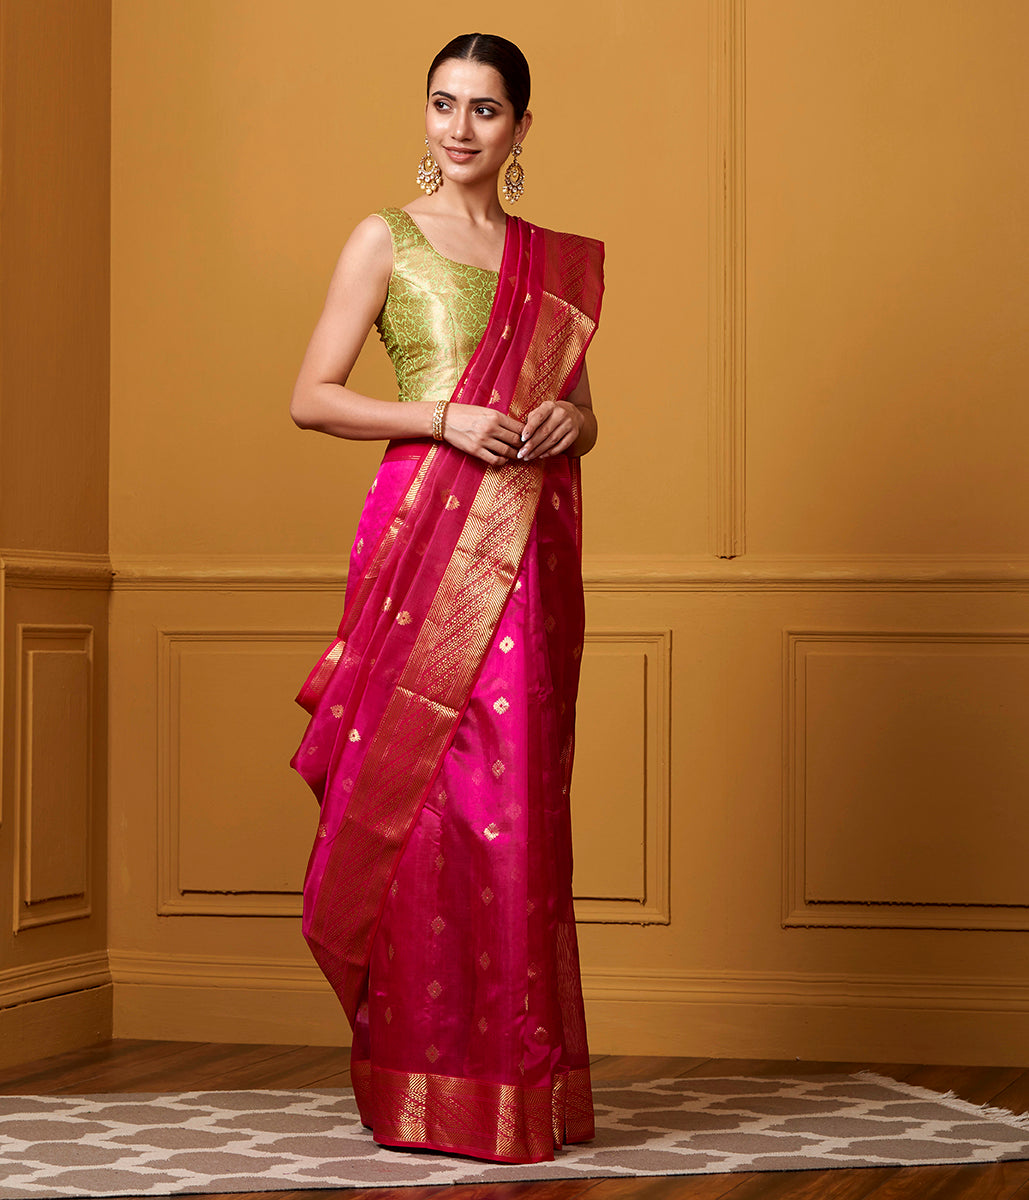 Handwoven Pink Silk Saree With Gold Border And Diamond Motif